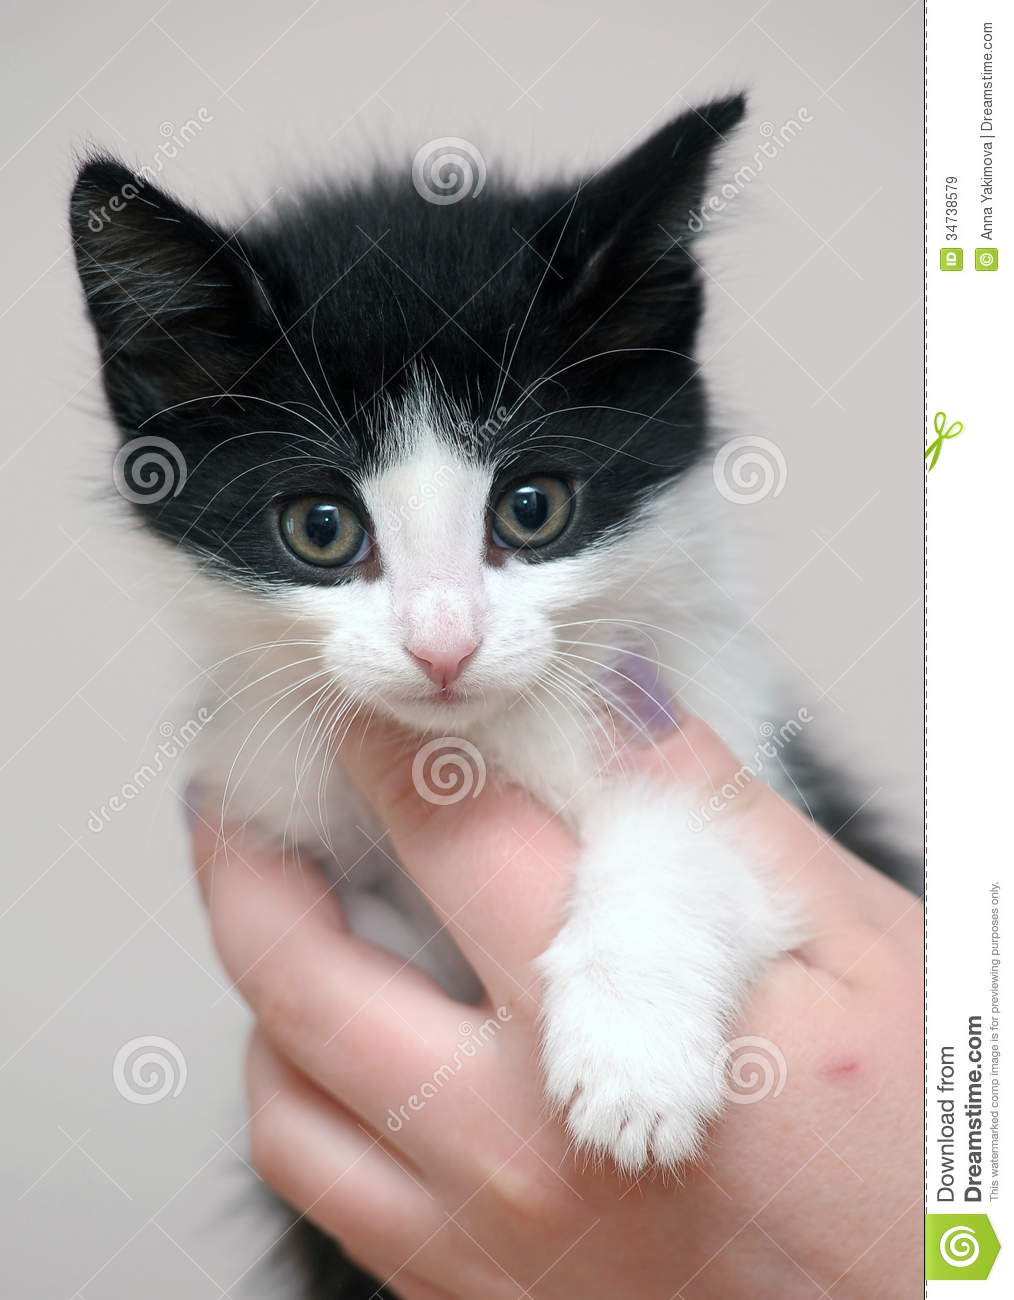 Funny black and white kitten in hands.